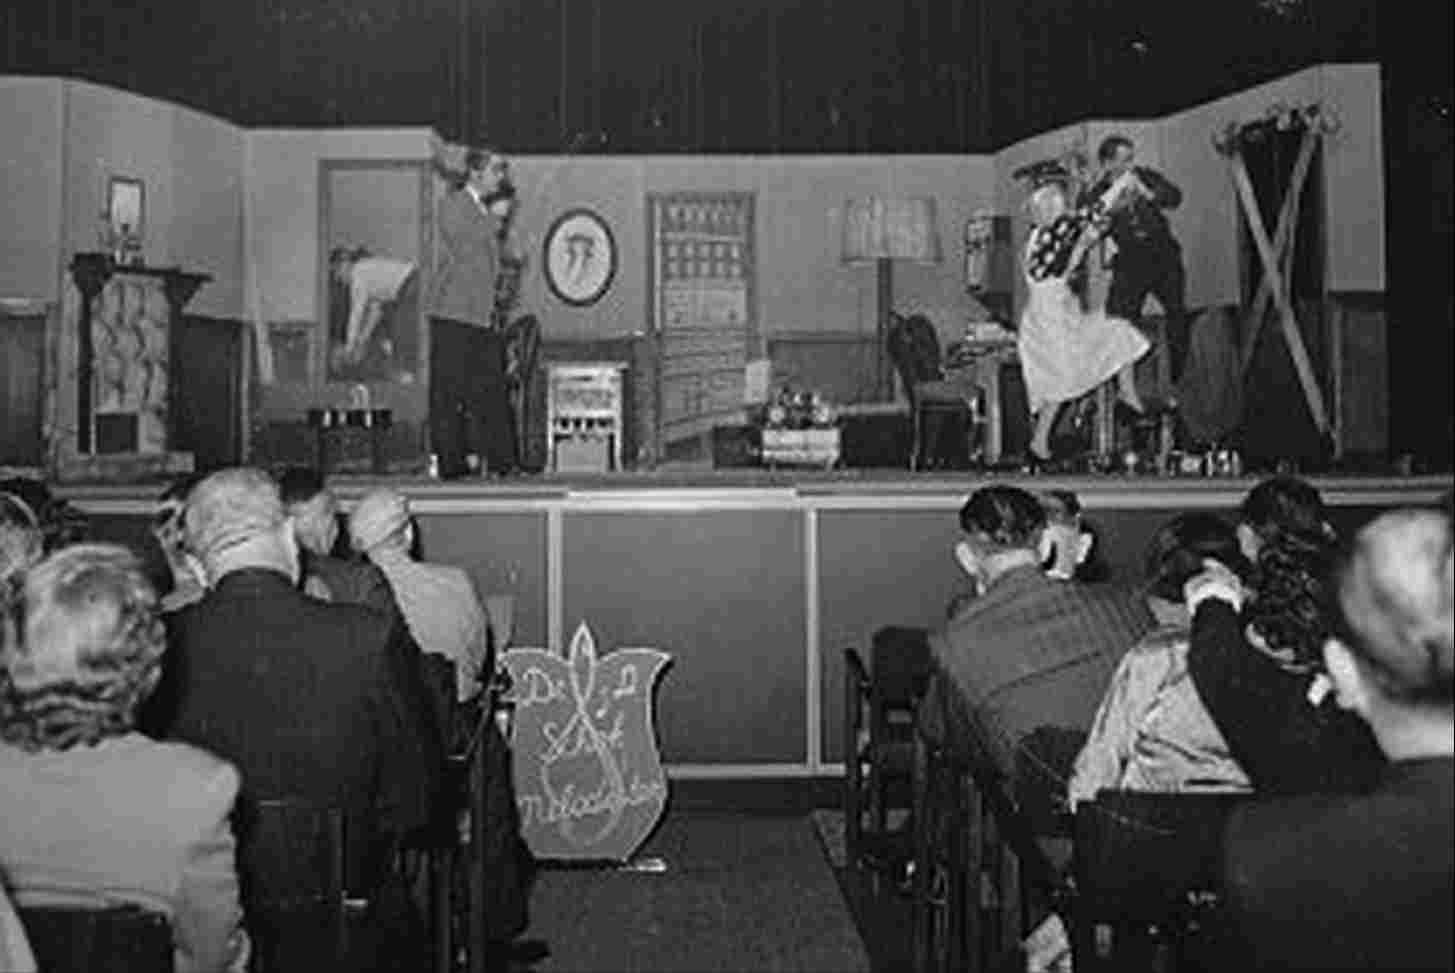 Drama performance in Hotel-Café-Restaurant 't Voorhuys, 1954.